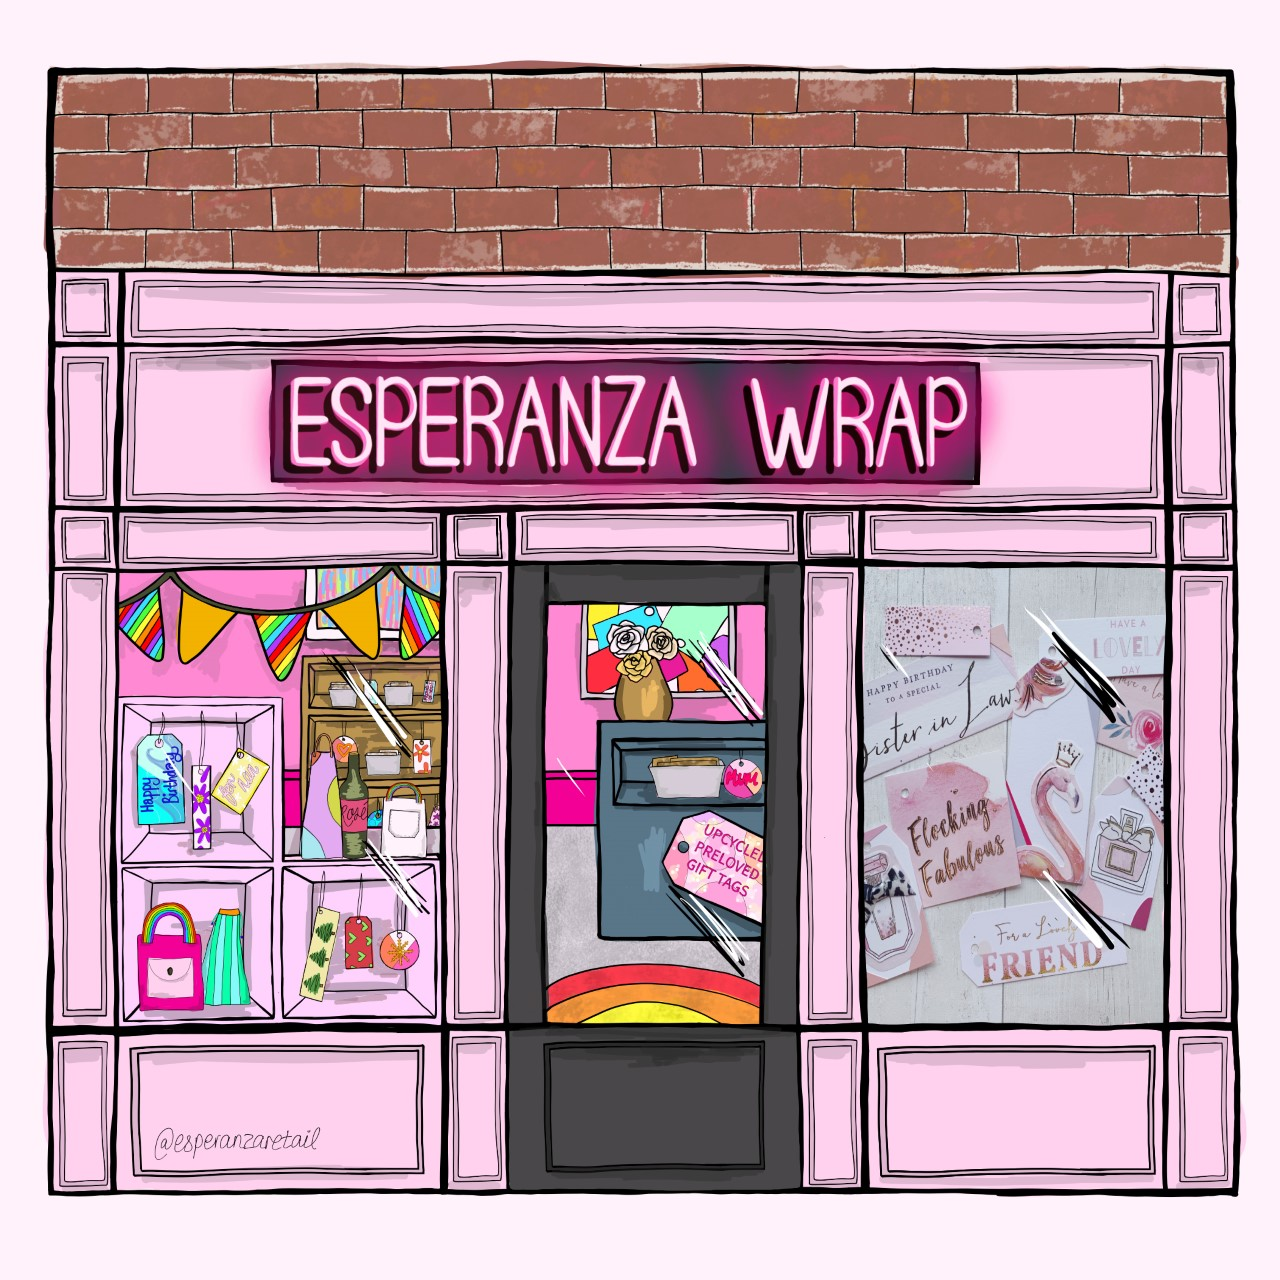 An illustration of Esperanza Wrap with rainbow bunting, pink walls and a colourful display of gift tags in the window